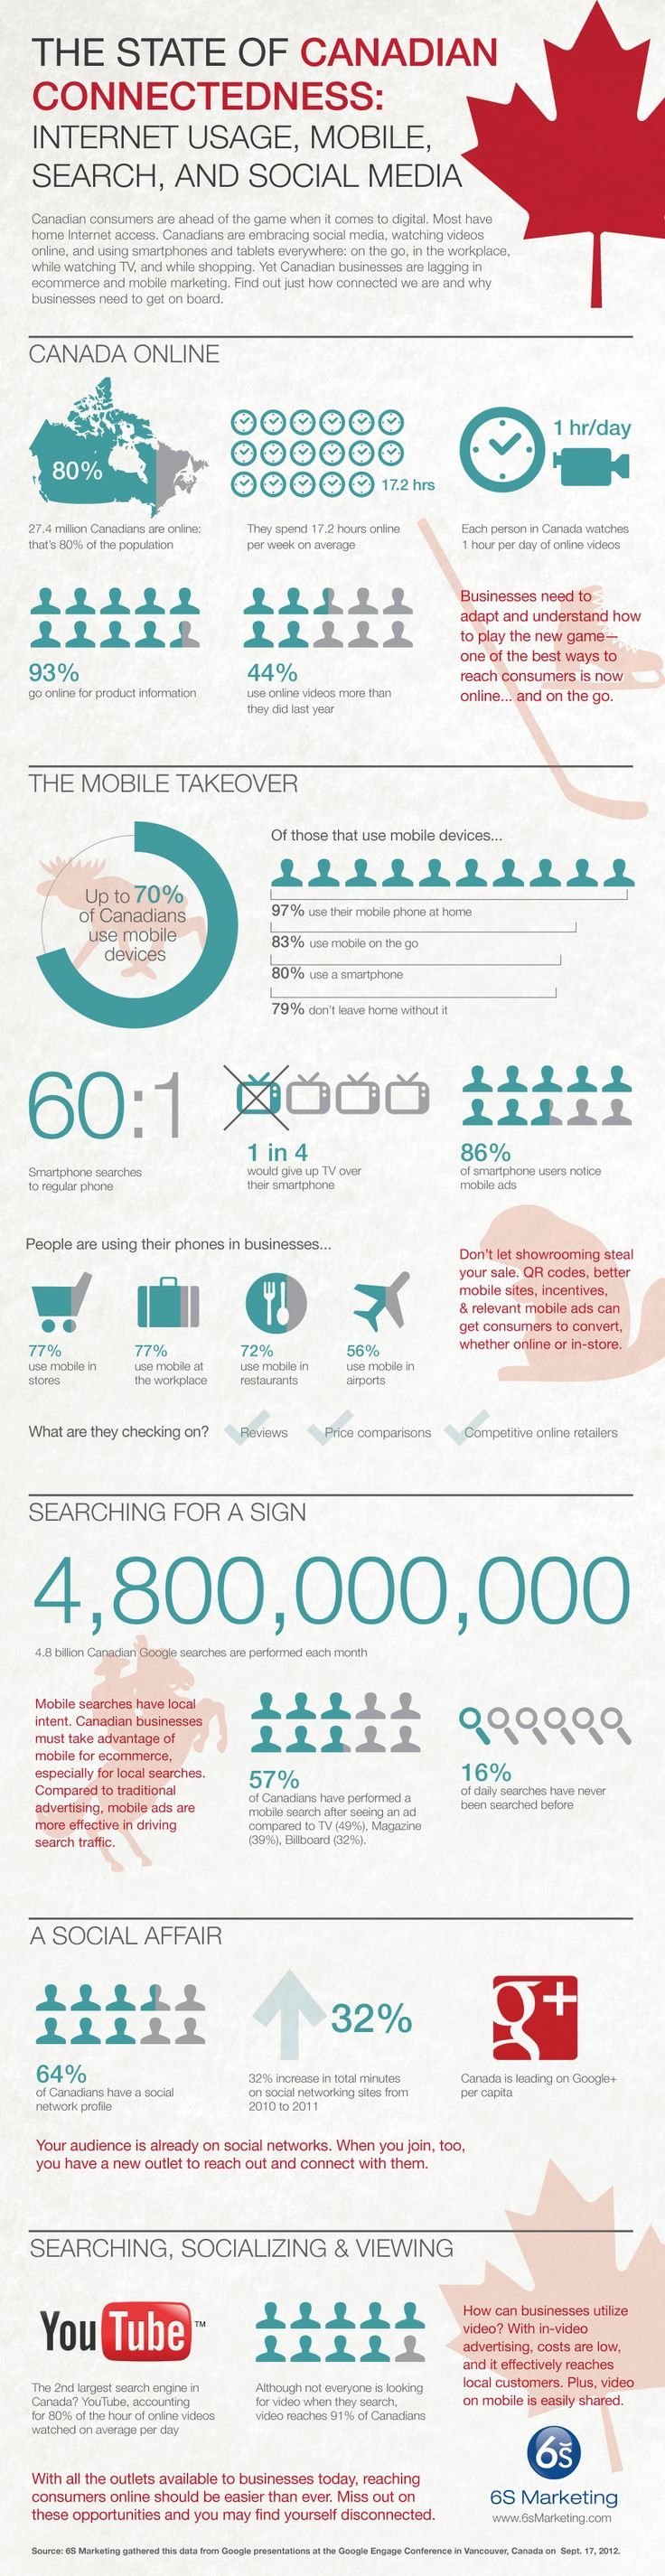 Infographic: Canadian Internet Usage Statistics on Mobile, Search and Social